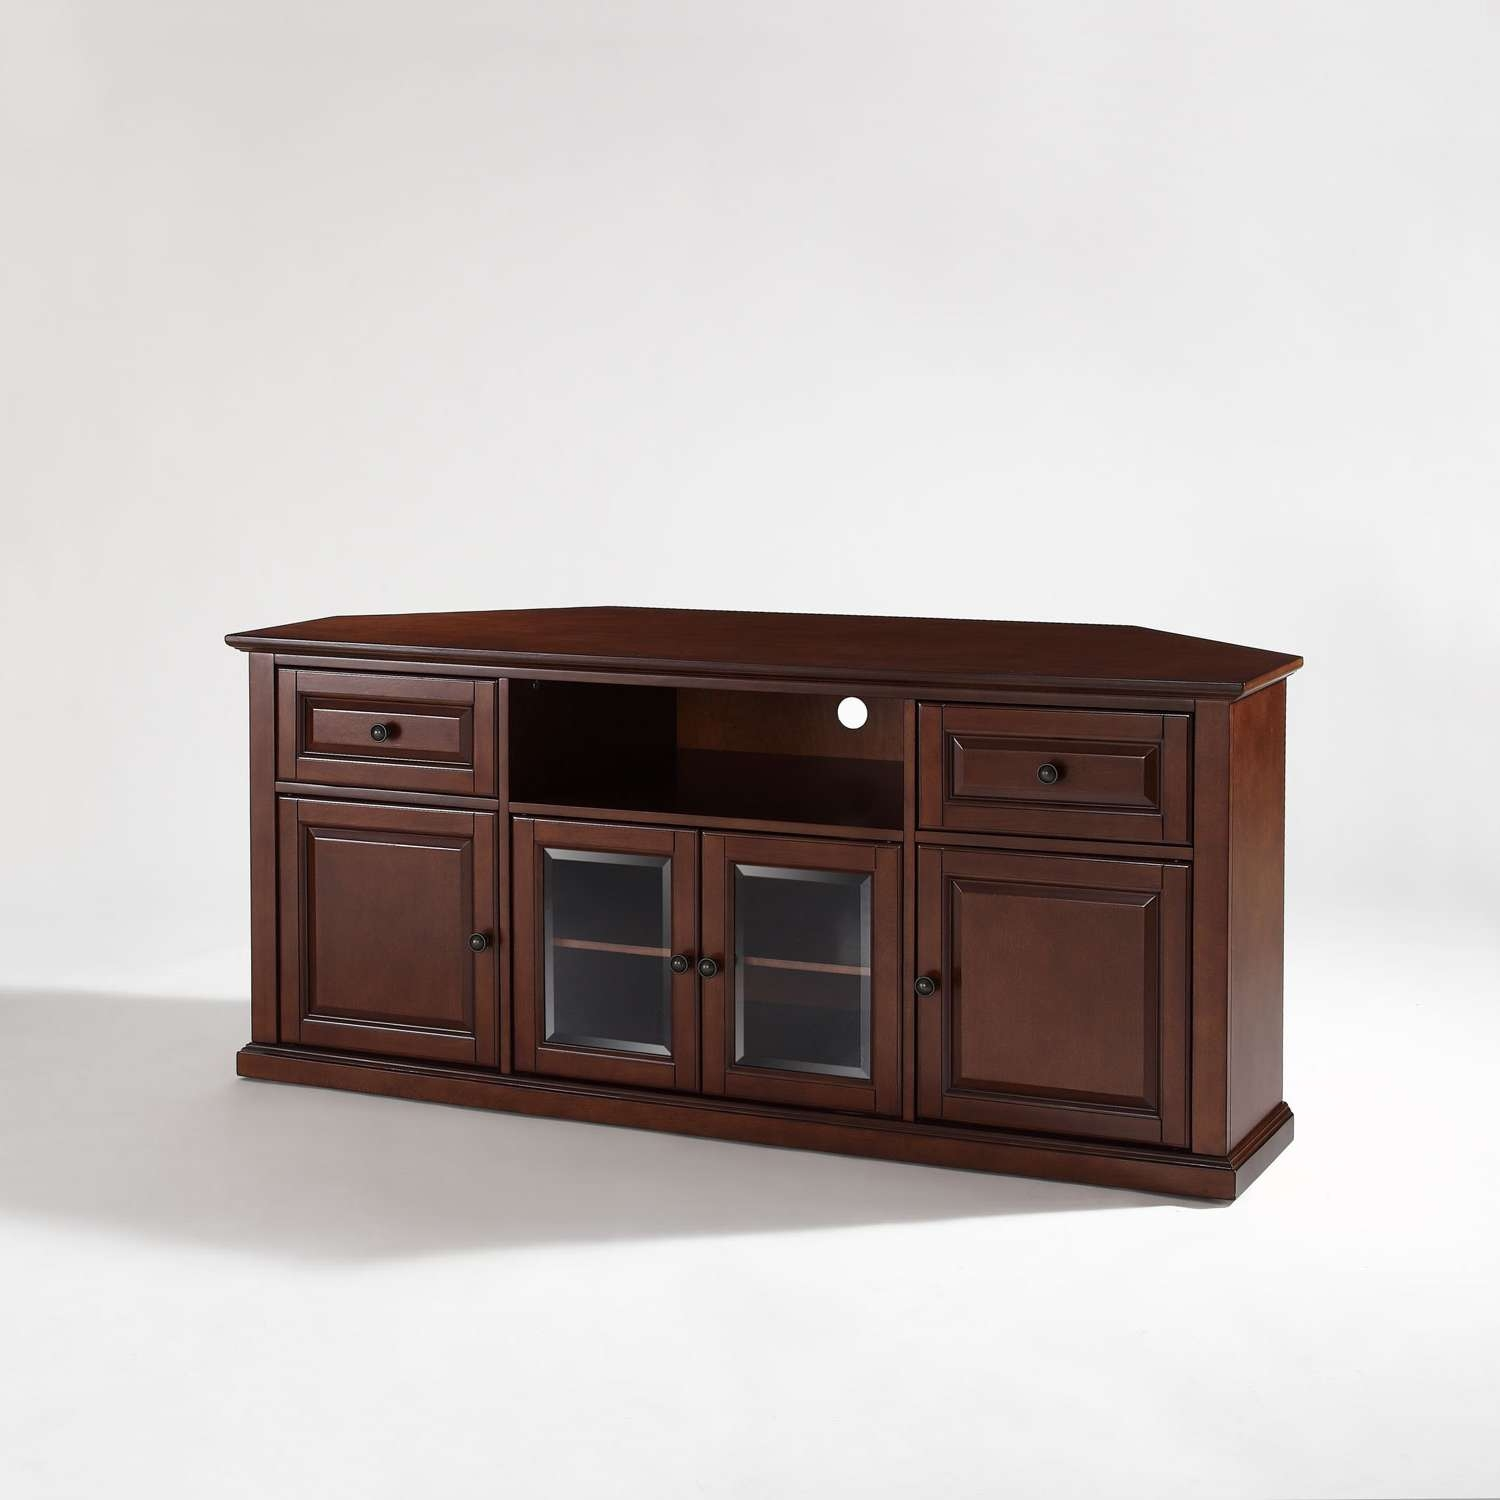 Tv Stands & Cabinets On Sale | Bellacor Regarding Retro Corner Tv Stands (View 10 of 15)